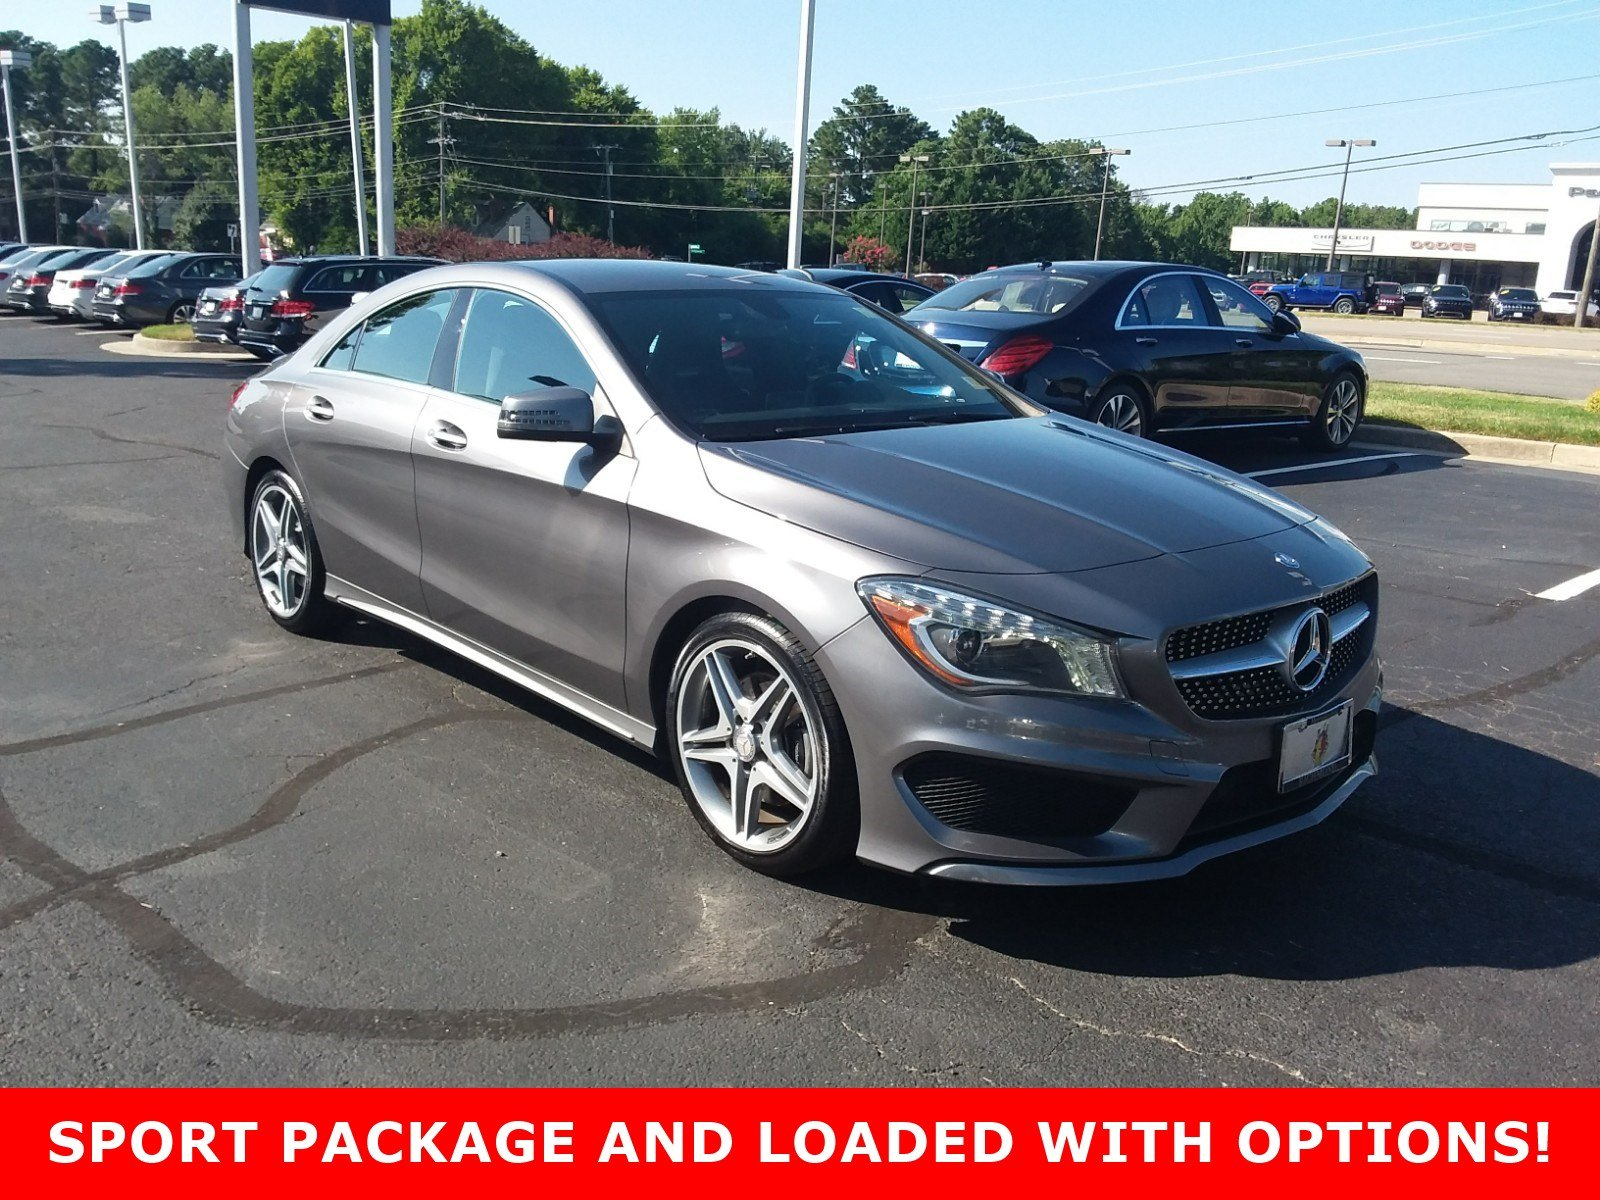 Pre Owned 2014 Mercedes Benz CLA CLA 250 Sport Coupe in Richmond